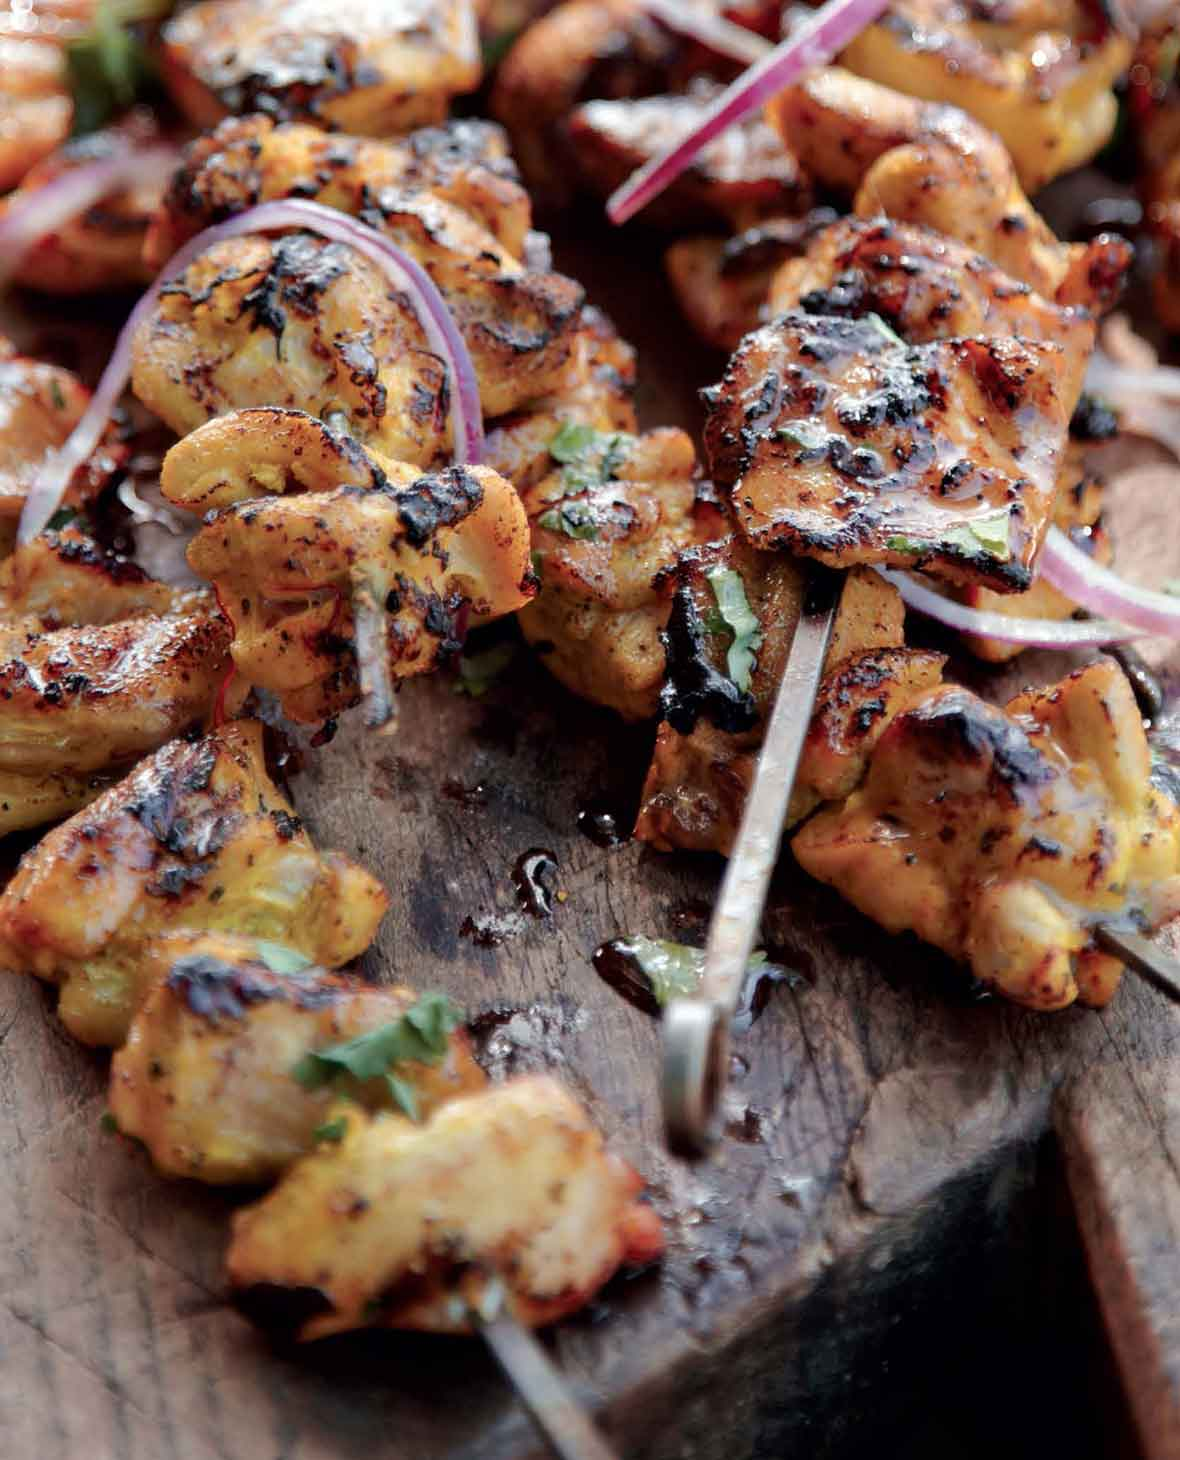 How long do i grill chicken skewers - Chicken Skewers Recipe